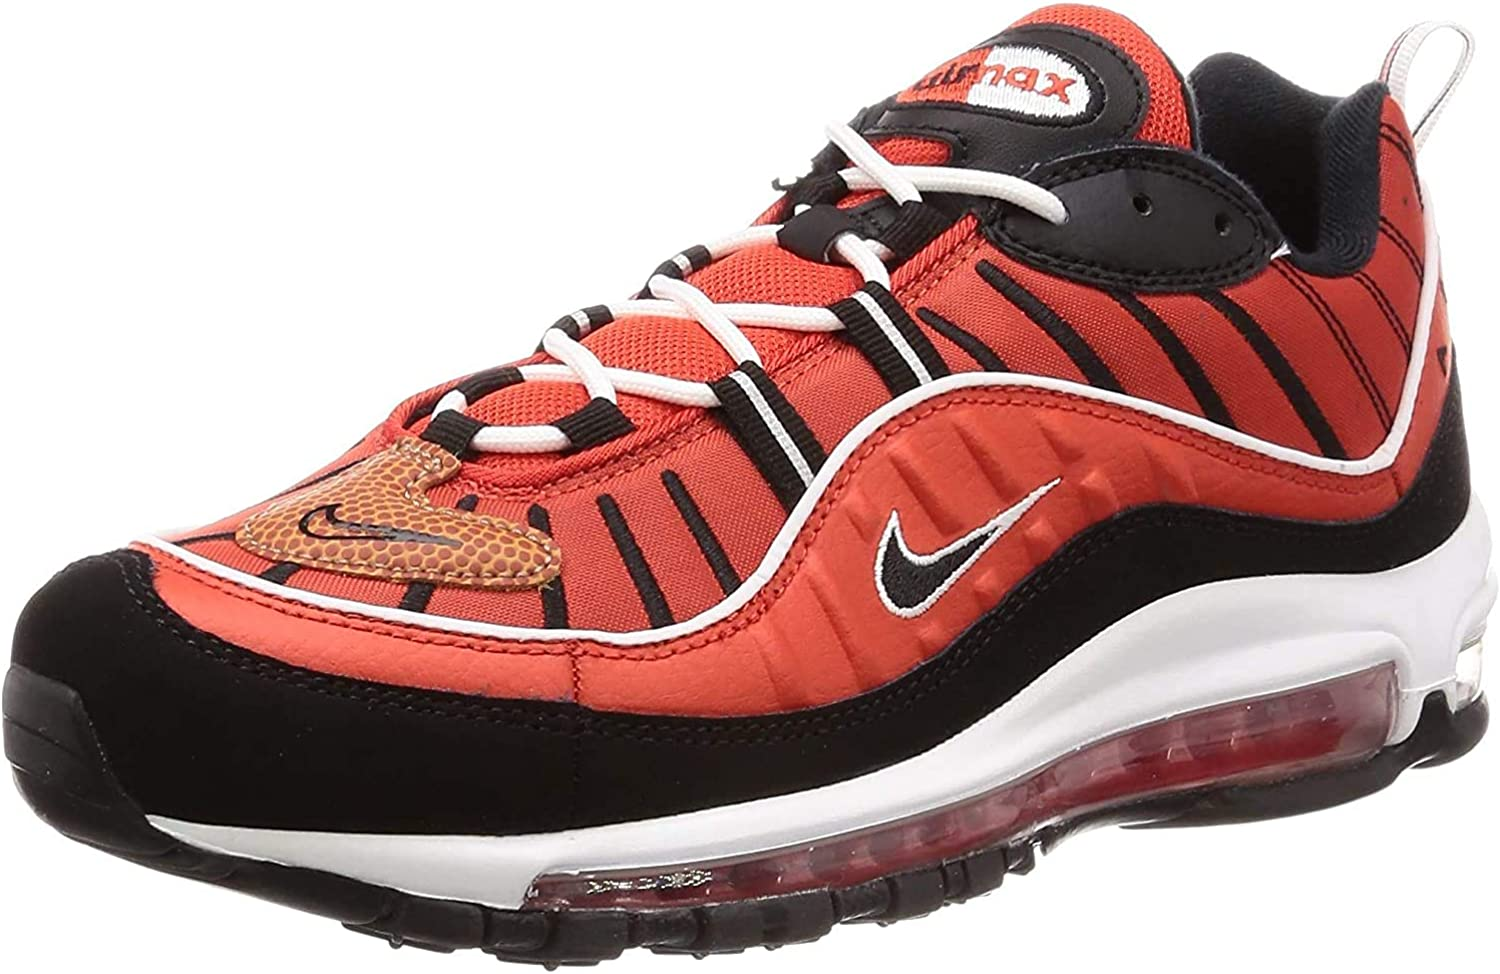 Nike Air Max 98, Chaussures d'Athlétisme Homme Multicolore Habanero Red Black White Metallic Gold 604